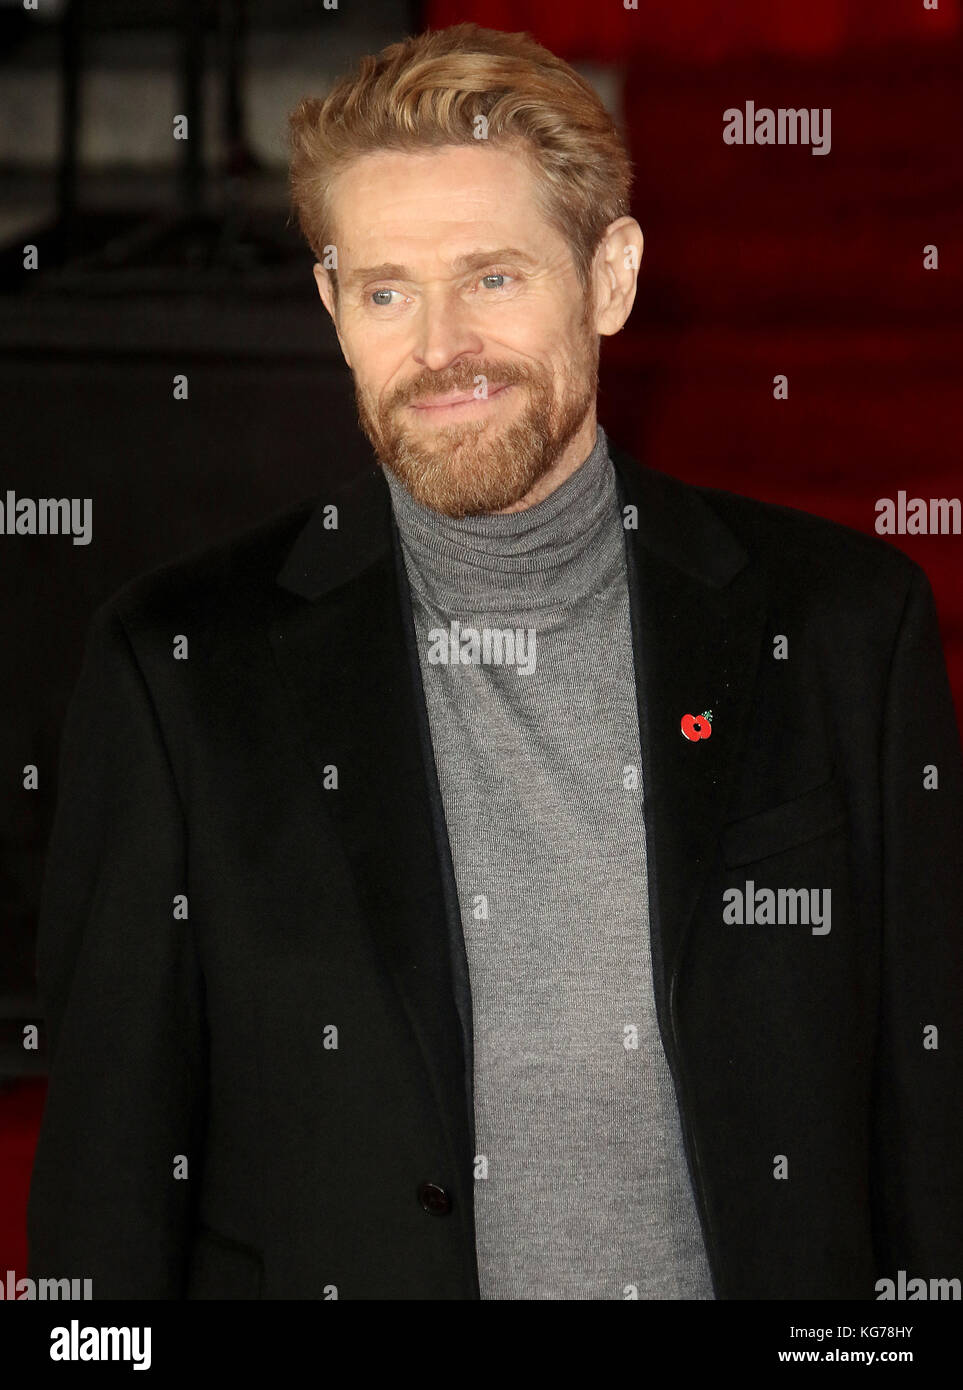 London, UK. 2nd November, 2017. Willem Dafoe attends the Murder on the Orient Express film premiere - Stock Image